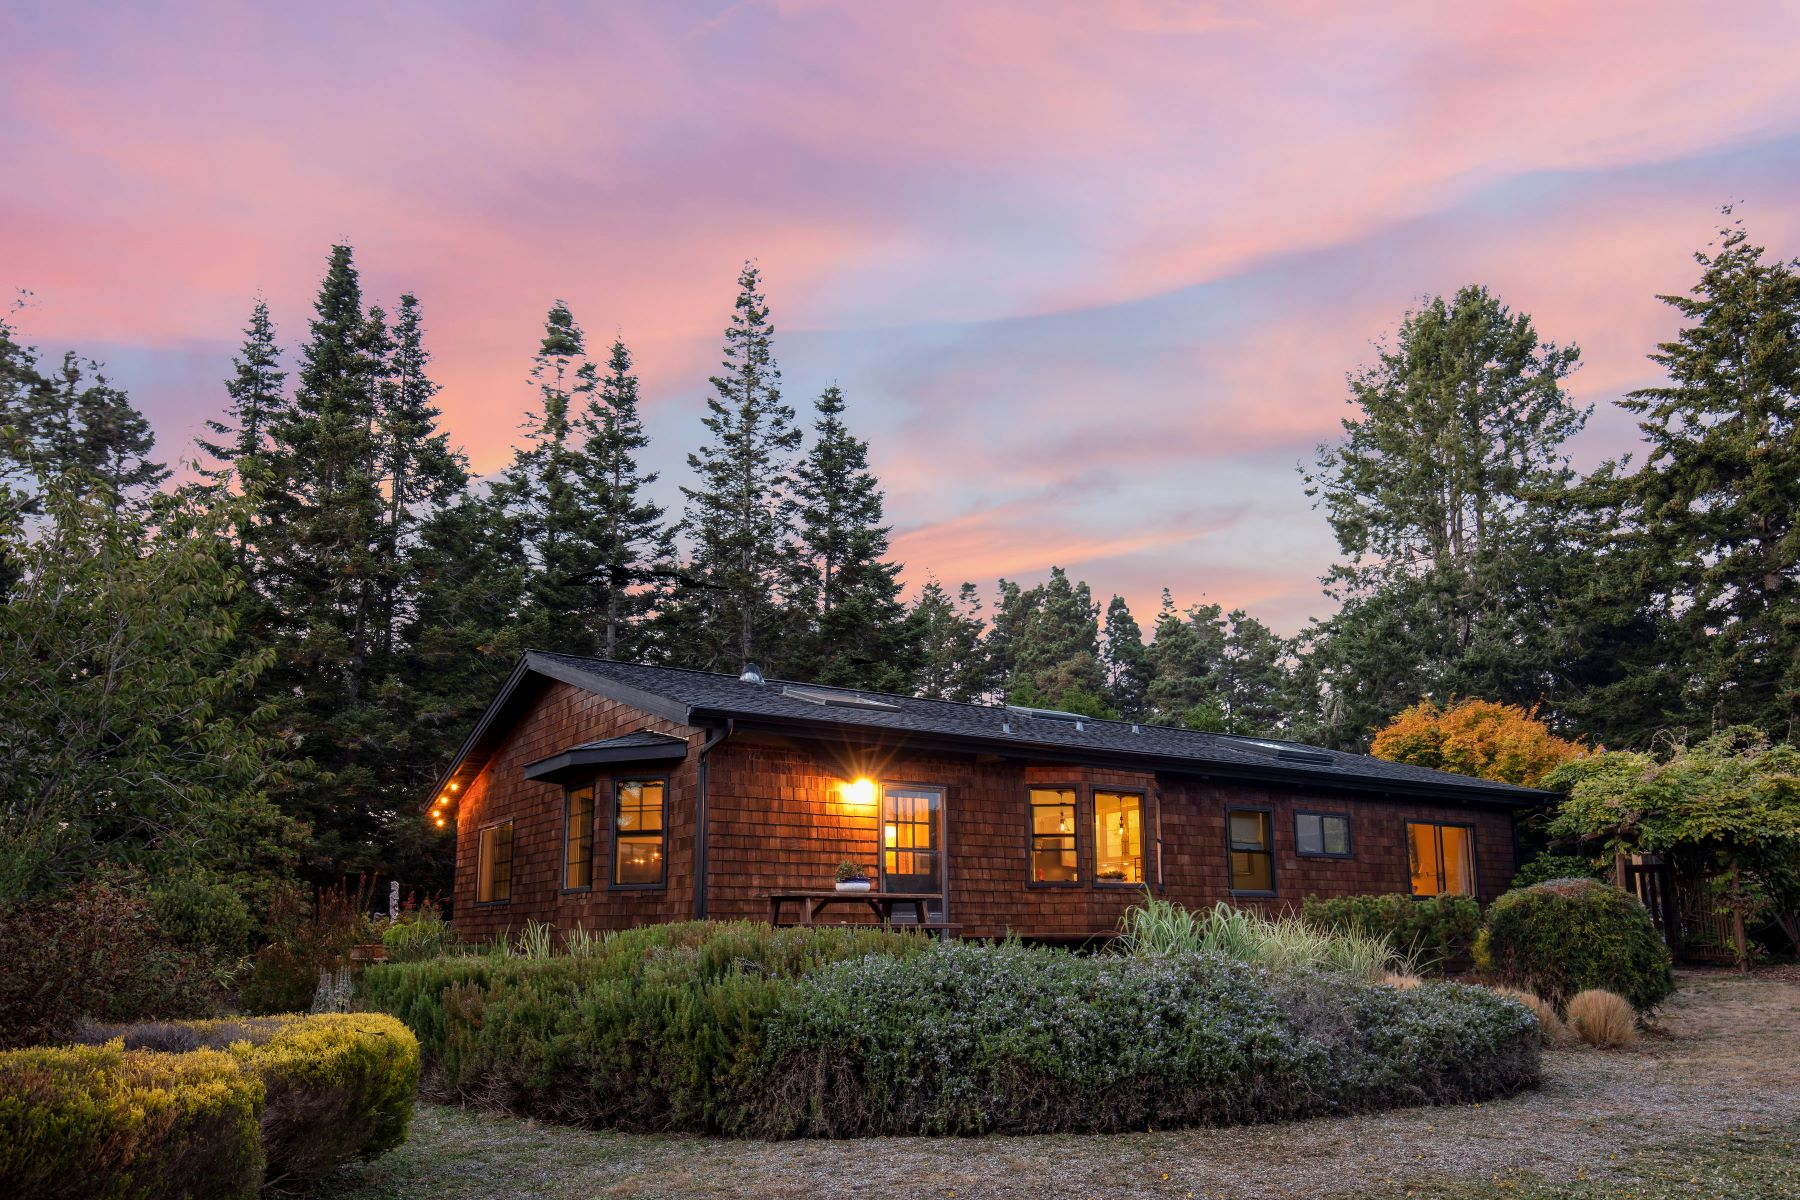 Single Family Home for Sale at Alderwood Court 12101 Alderwood Court Mendocino, California 95460 United States